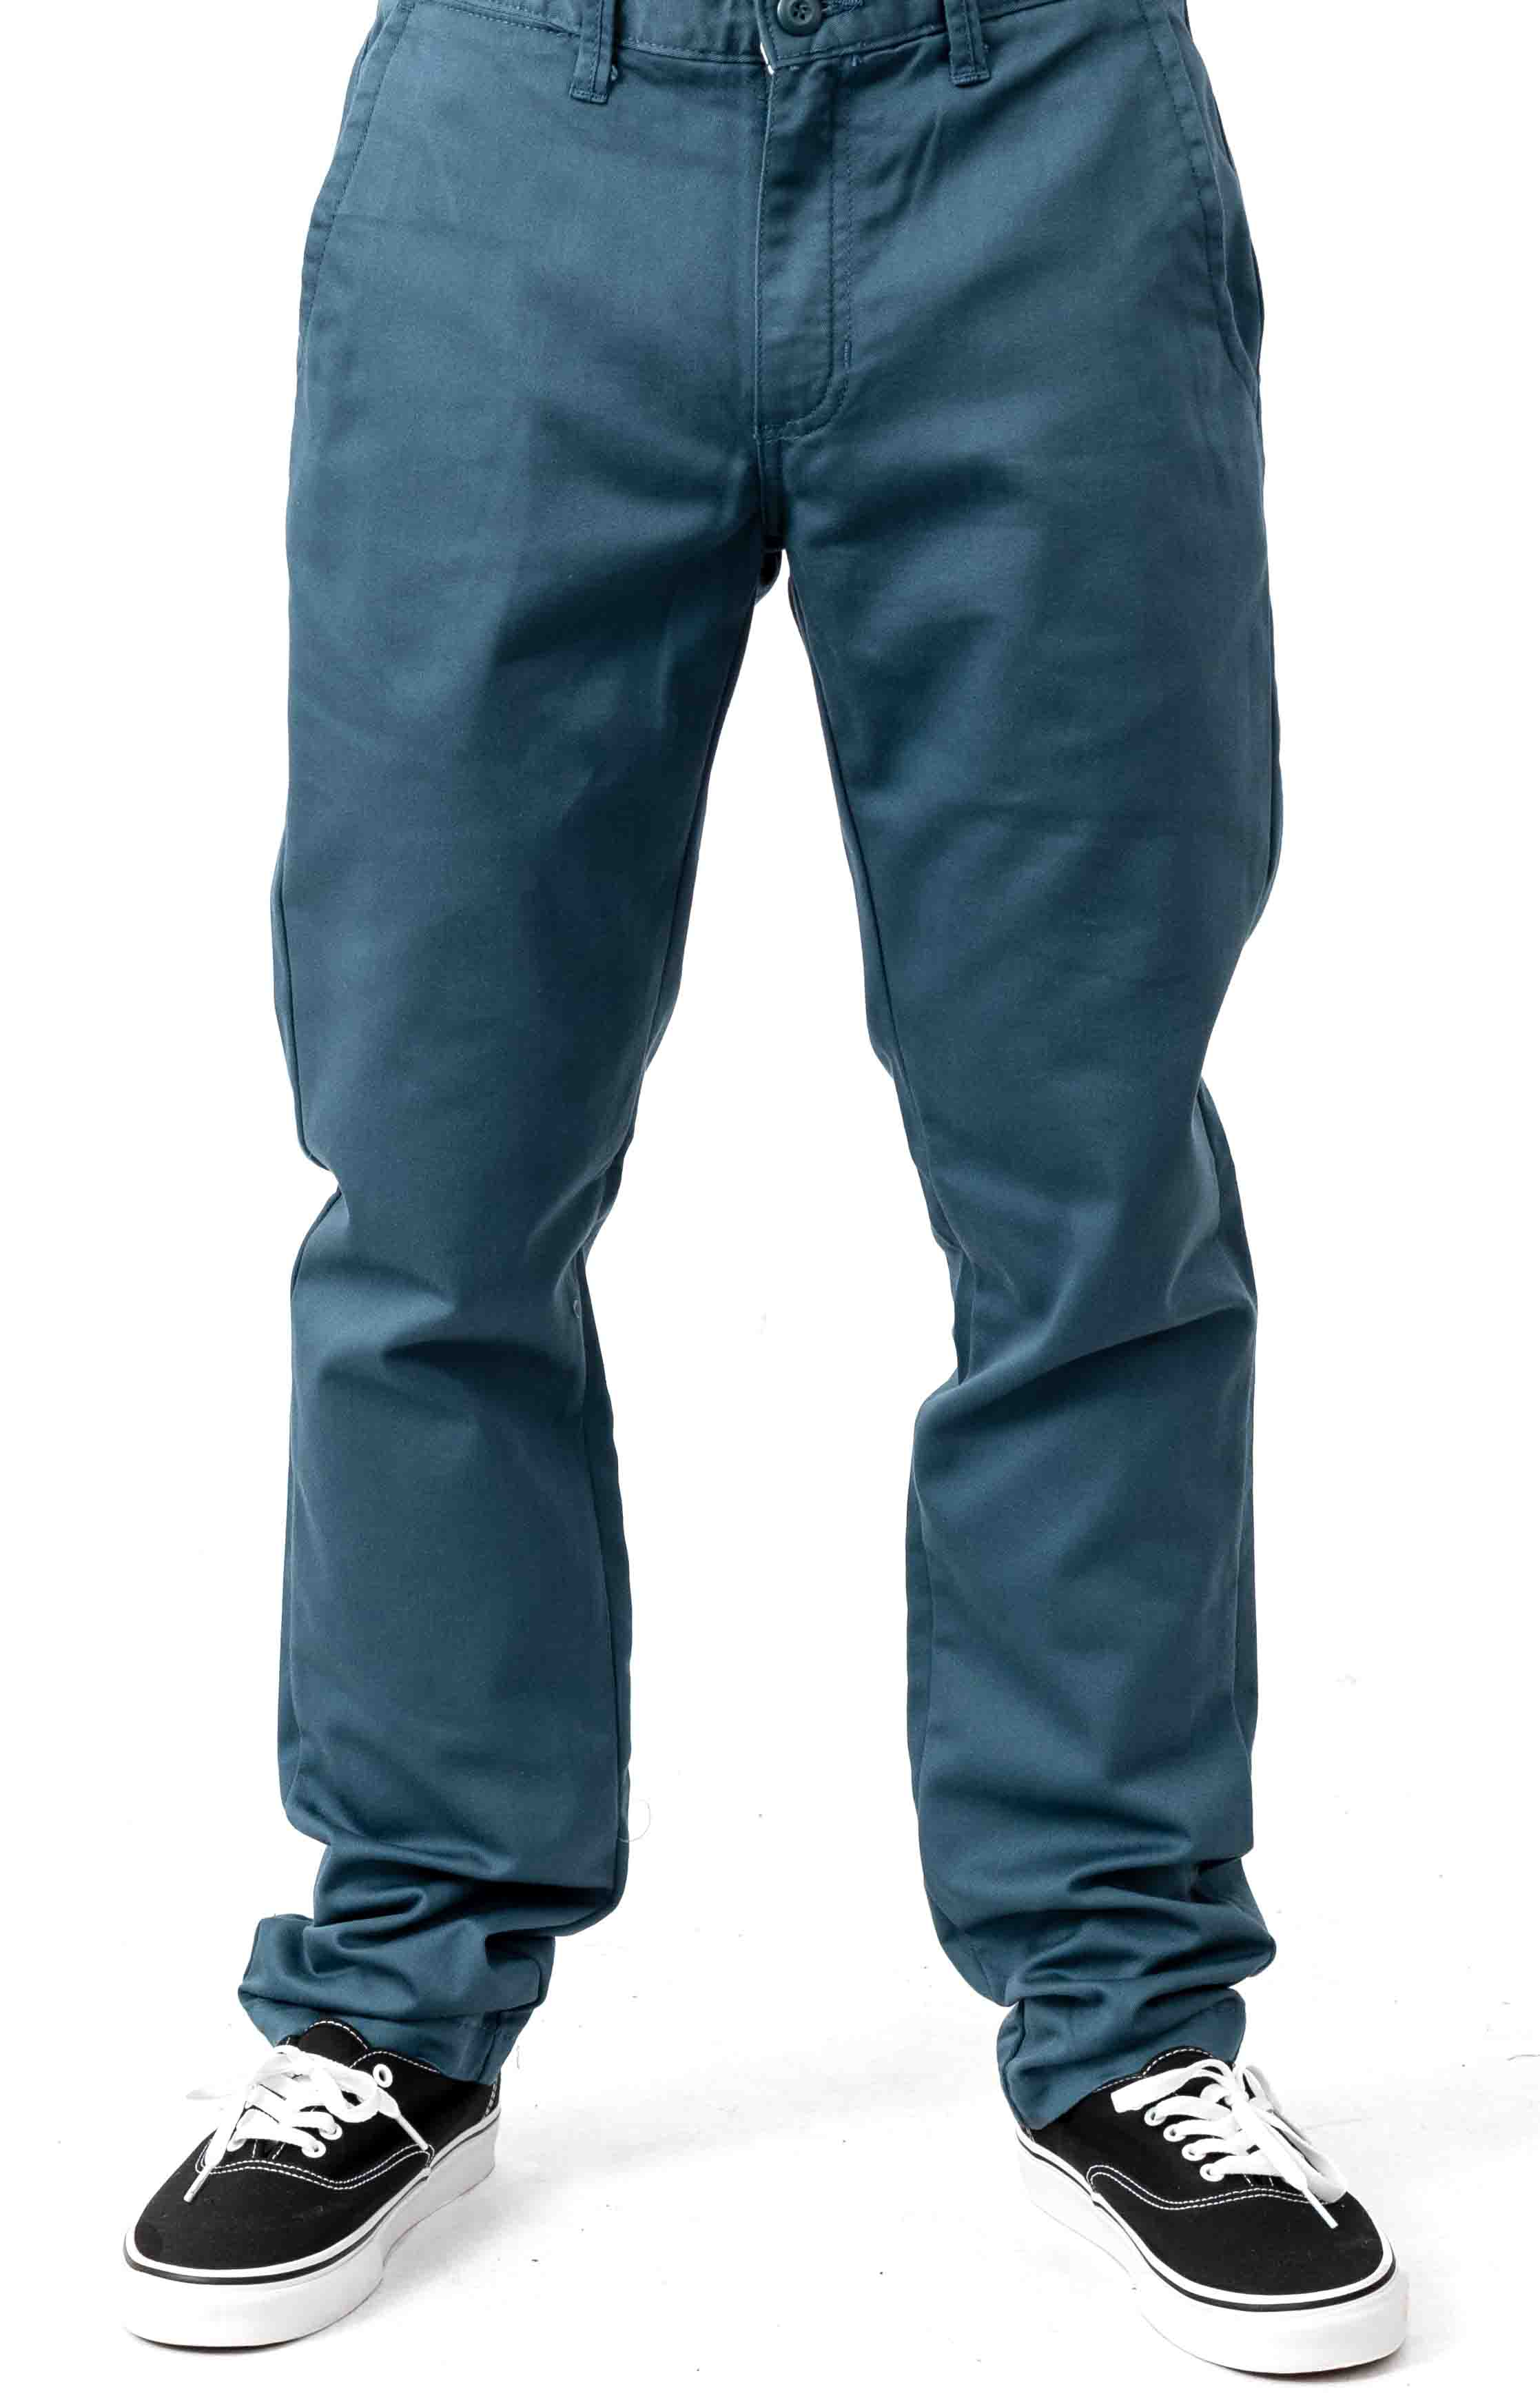 Authentic Chino Stretch Pant - Stargazer 2